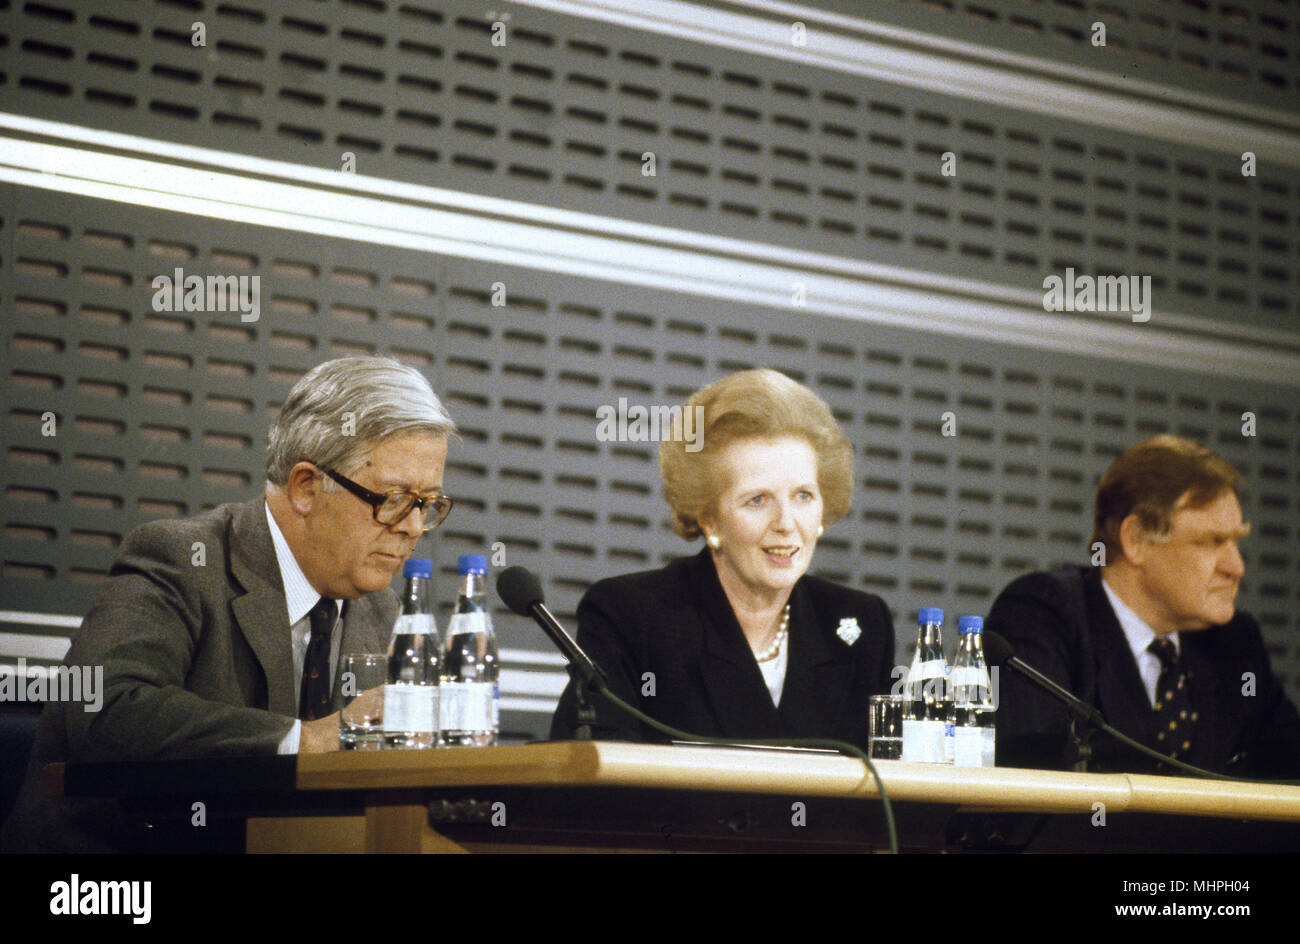 Margaret Thatcher (British Prime Minister), Geoffrey Howe (Foreign Secretary) and Bernard Ingham (Press Secretary) at a press conference in London, soon after an important visit by Mikhail Gorbachev, Russian President.     Date: circa 1984 - Stock Image